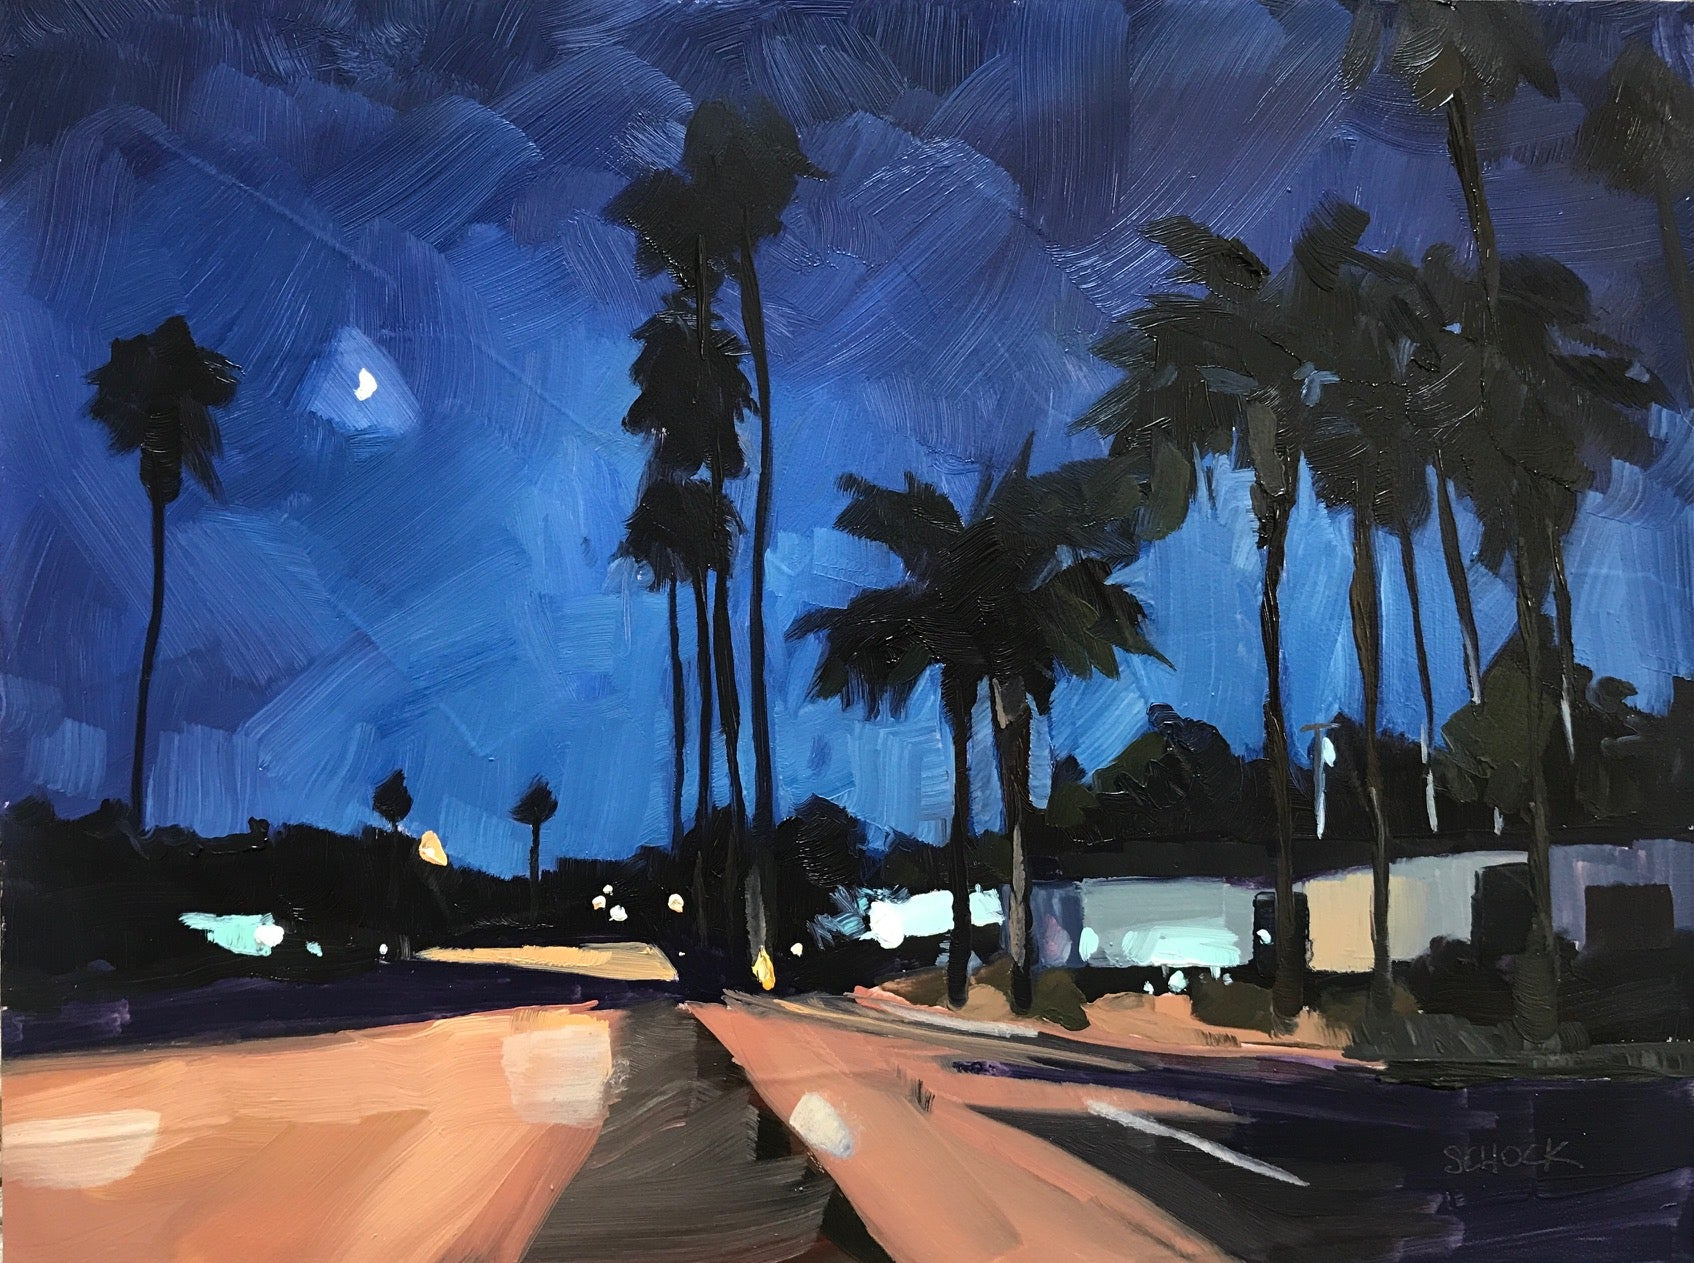 Neighborhood Nocturne V -6x8